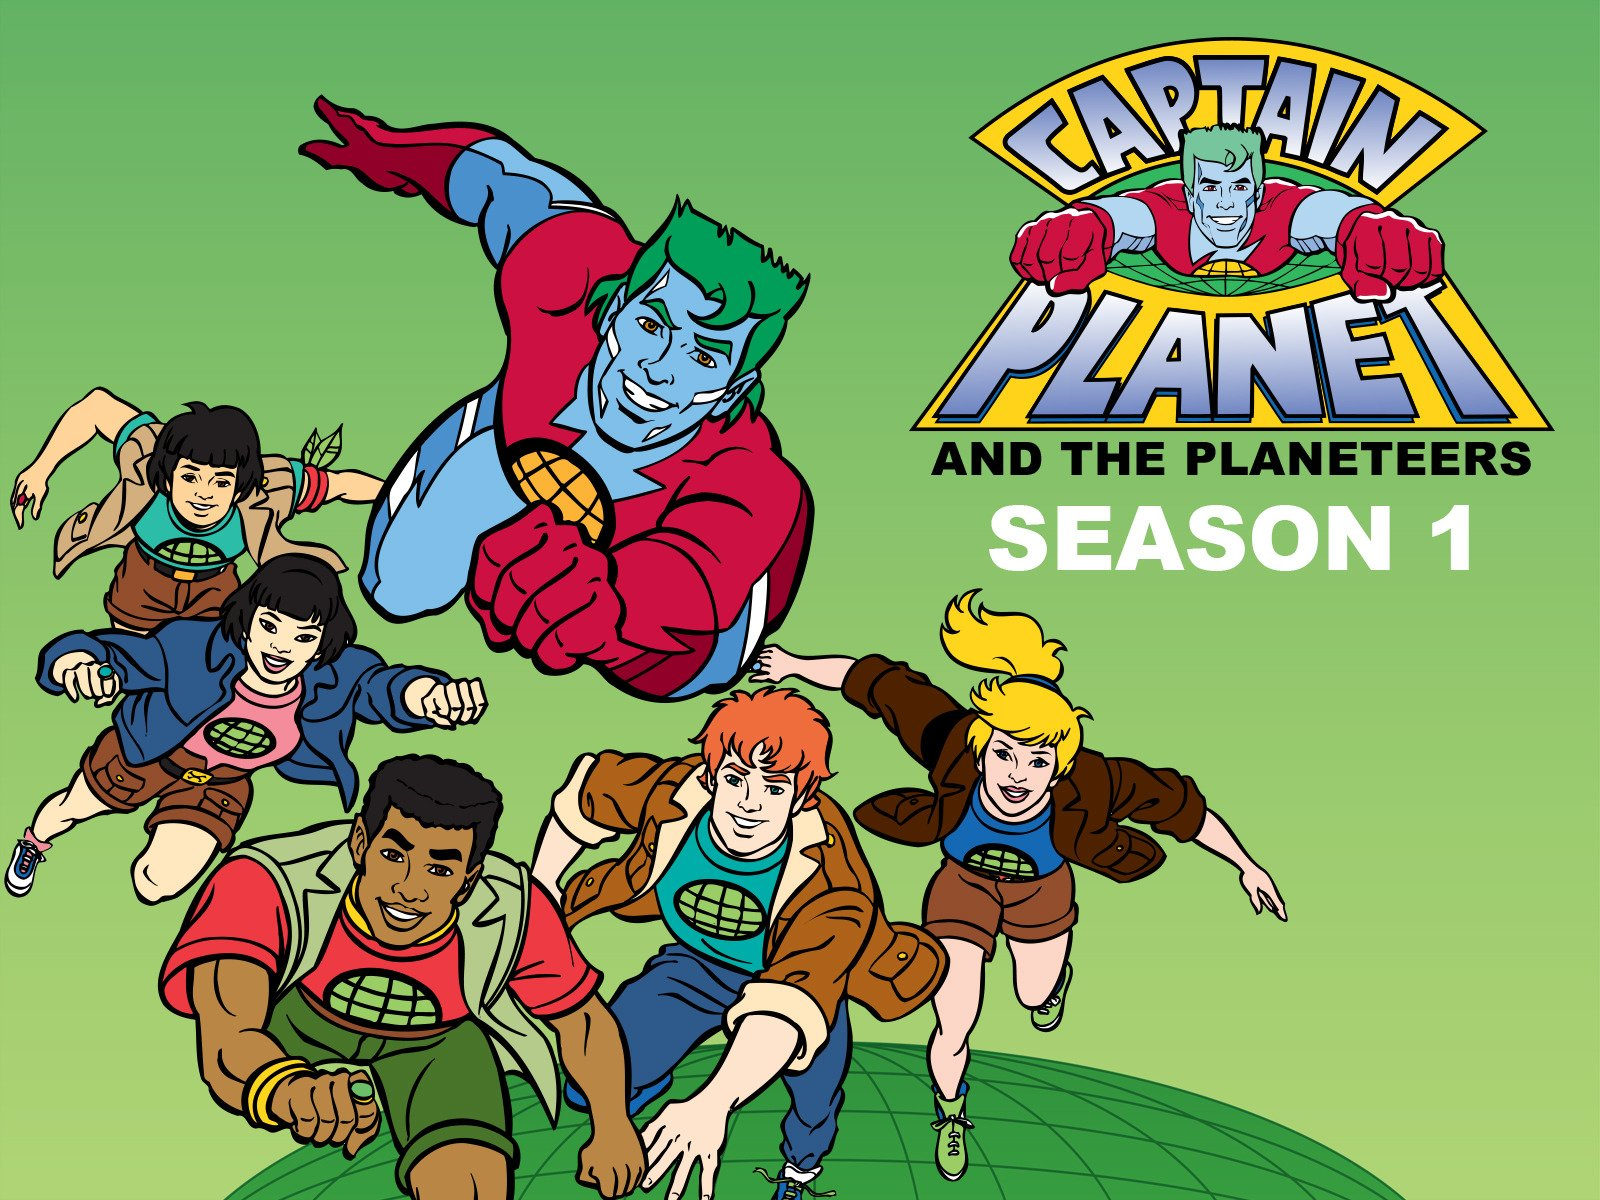 Amazoncom Watch Captain Planet and the Planeteers Season 1 1600x1200